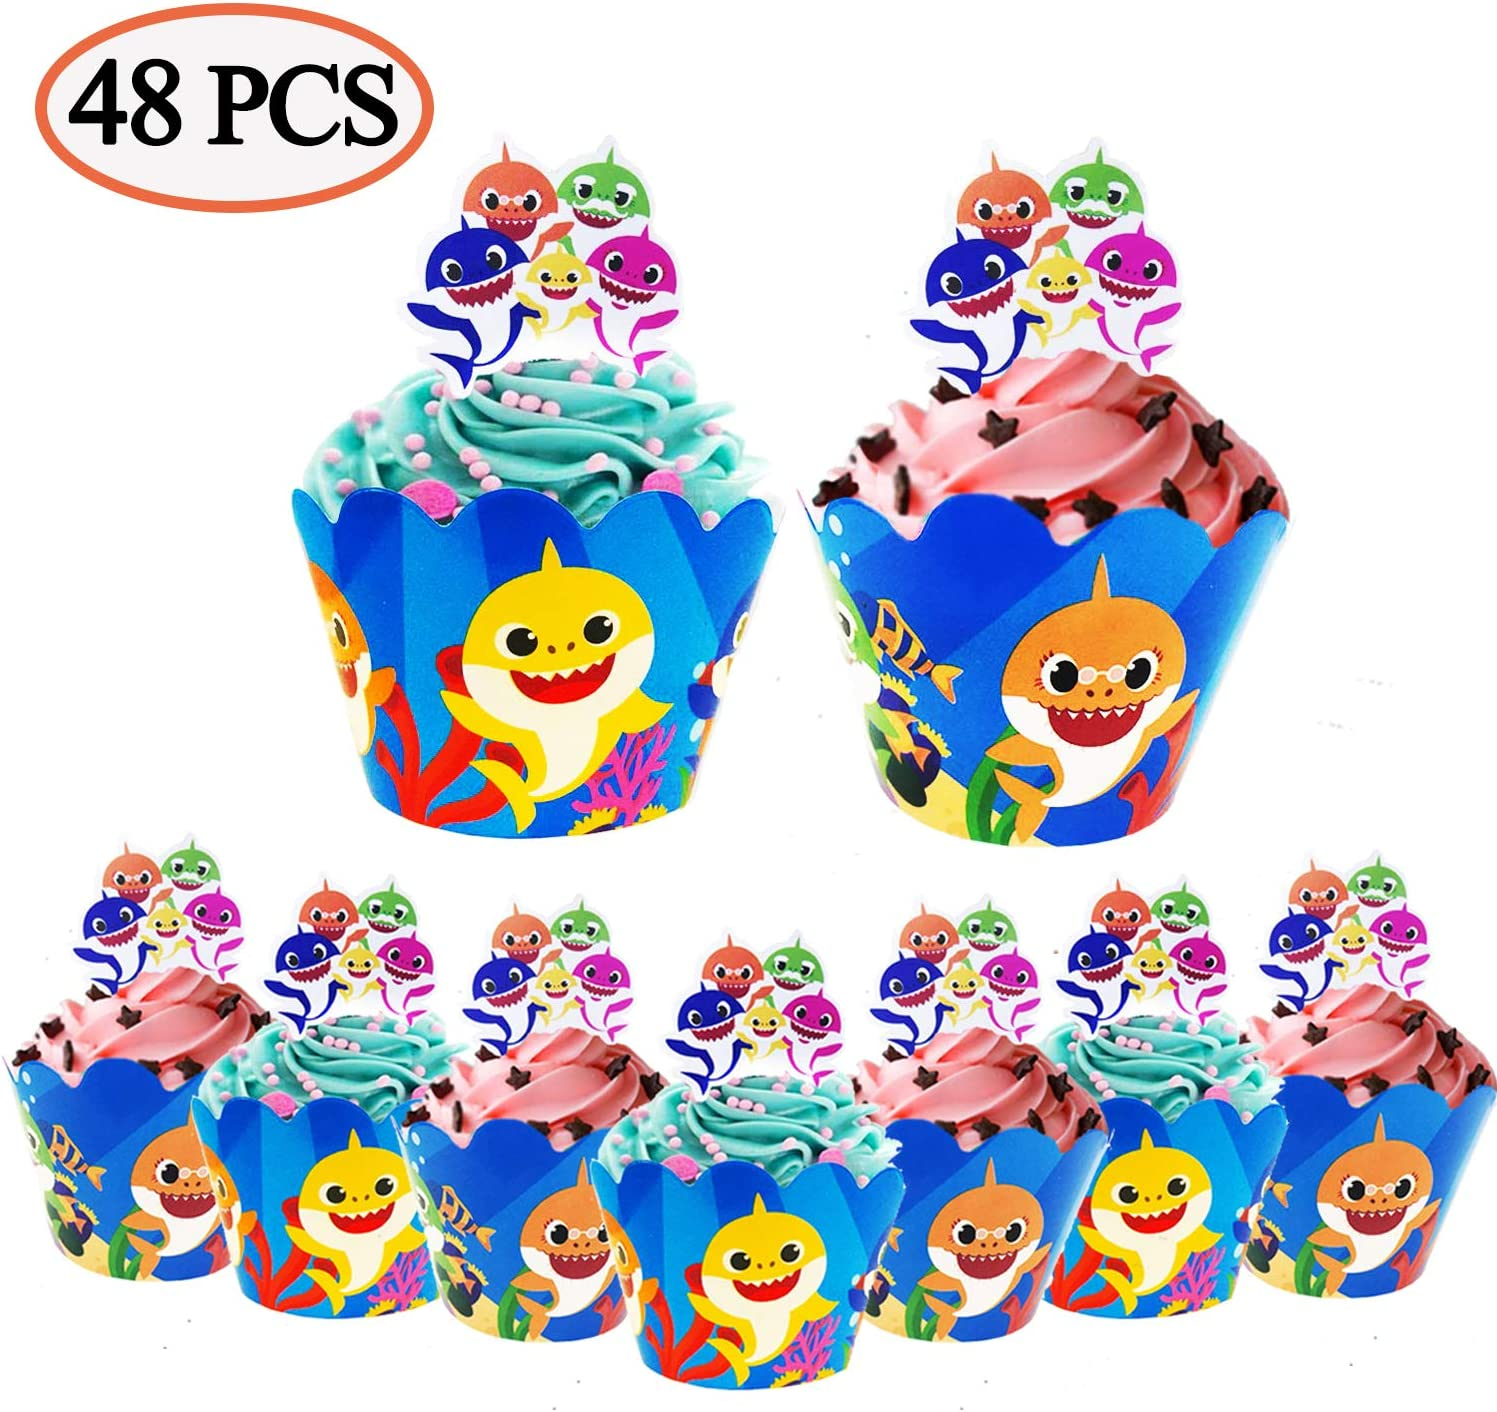 48 Pcs Shark Cupcake Decorations - 24 pcs Shark Cupcake Toppers and 24 pcs Cupcake Wrappers Themed Cake Party Decoration for Kids Birthday Party Supplies